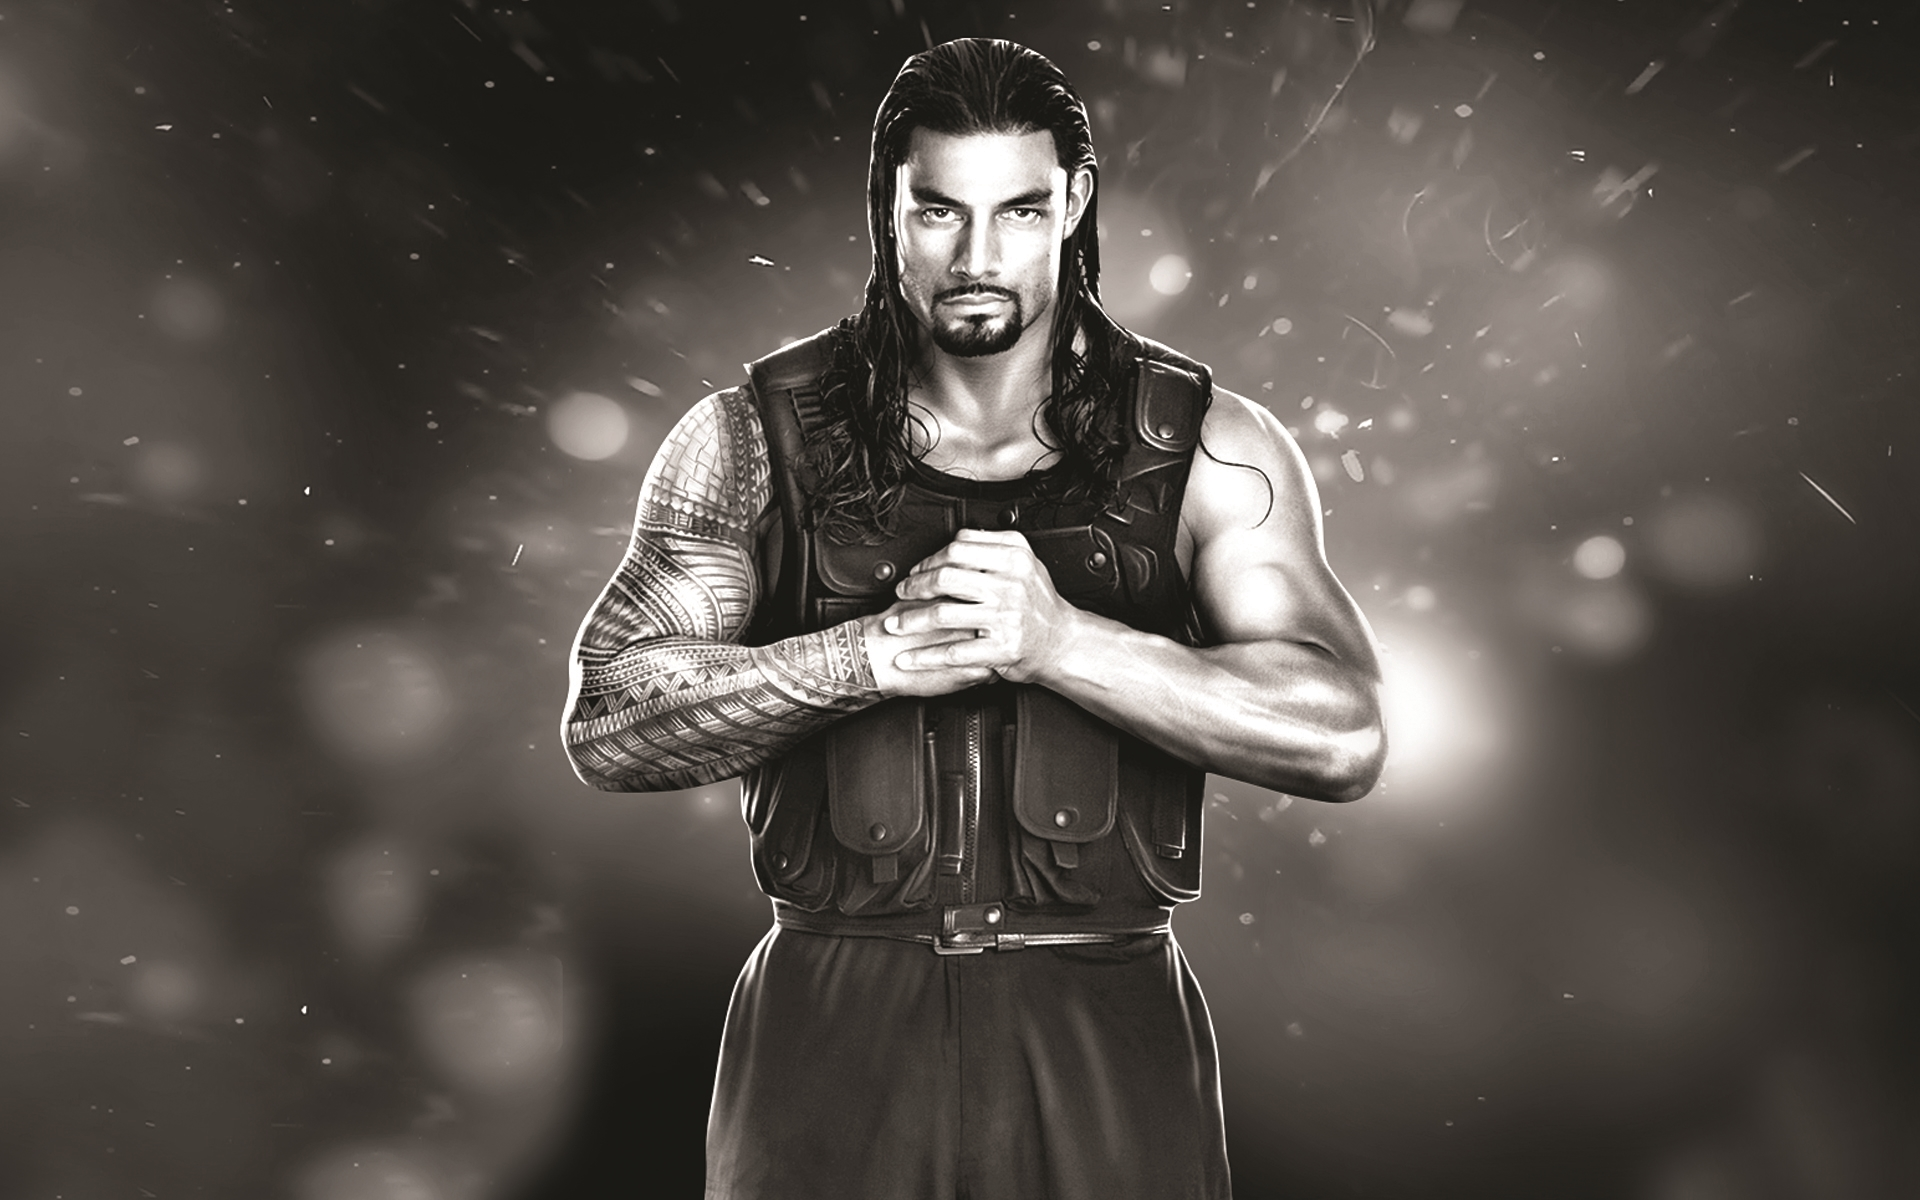 wwe roman reigns in new look hd wallpaper